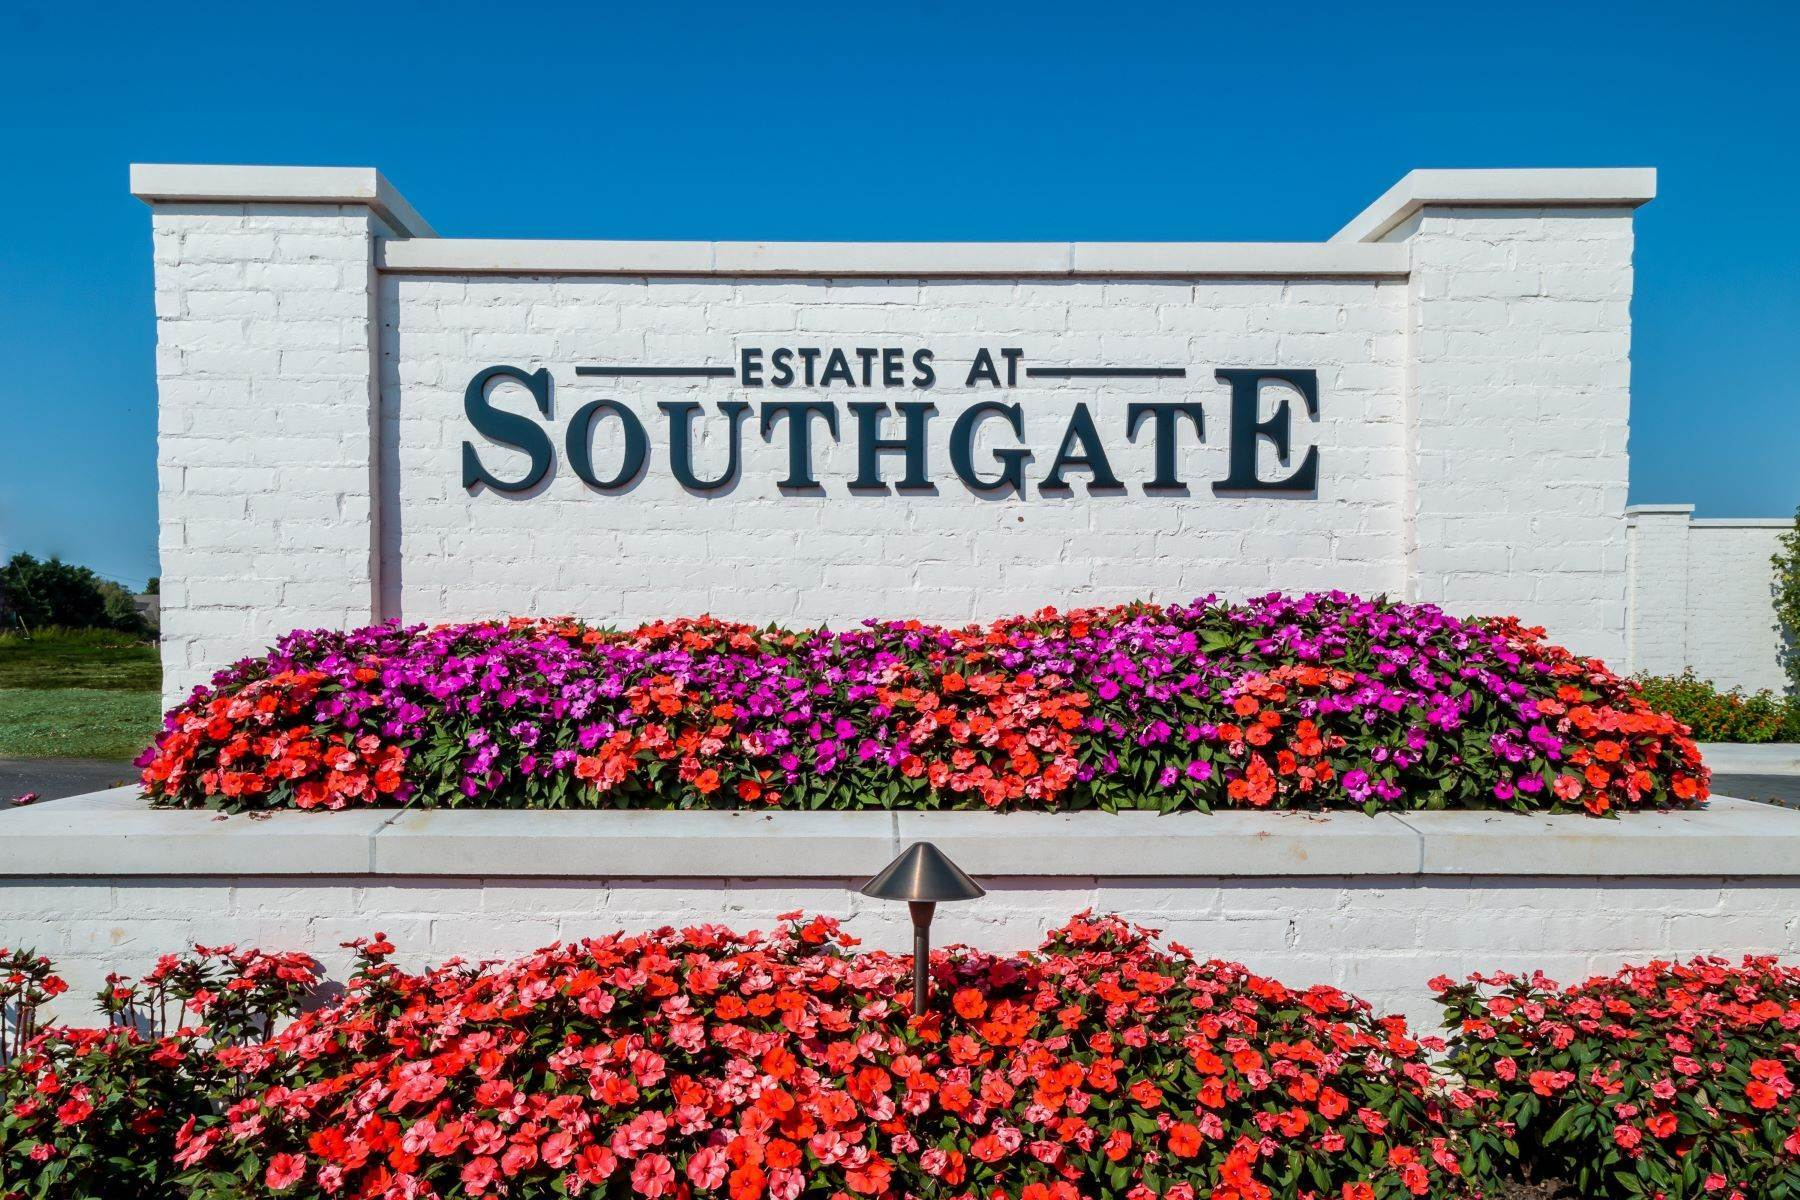 Land for Sale at Lot 8 Estates at Southgate 4814 Southgate Estates Circle Rogers, Arkansas 72758 United States